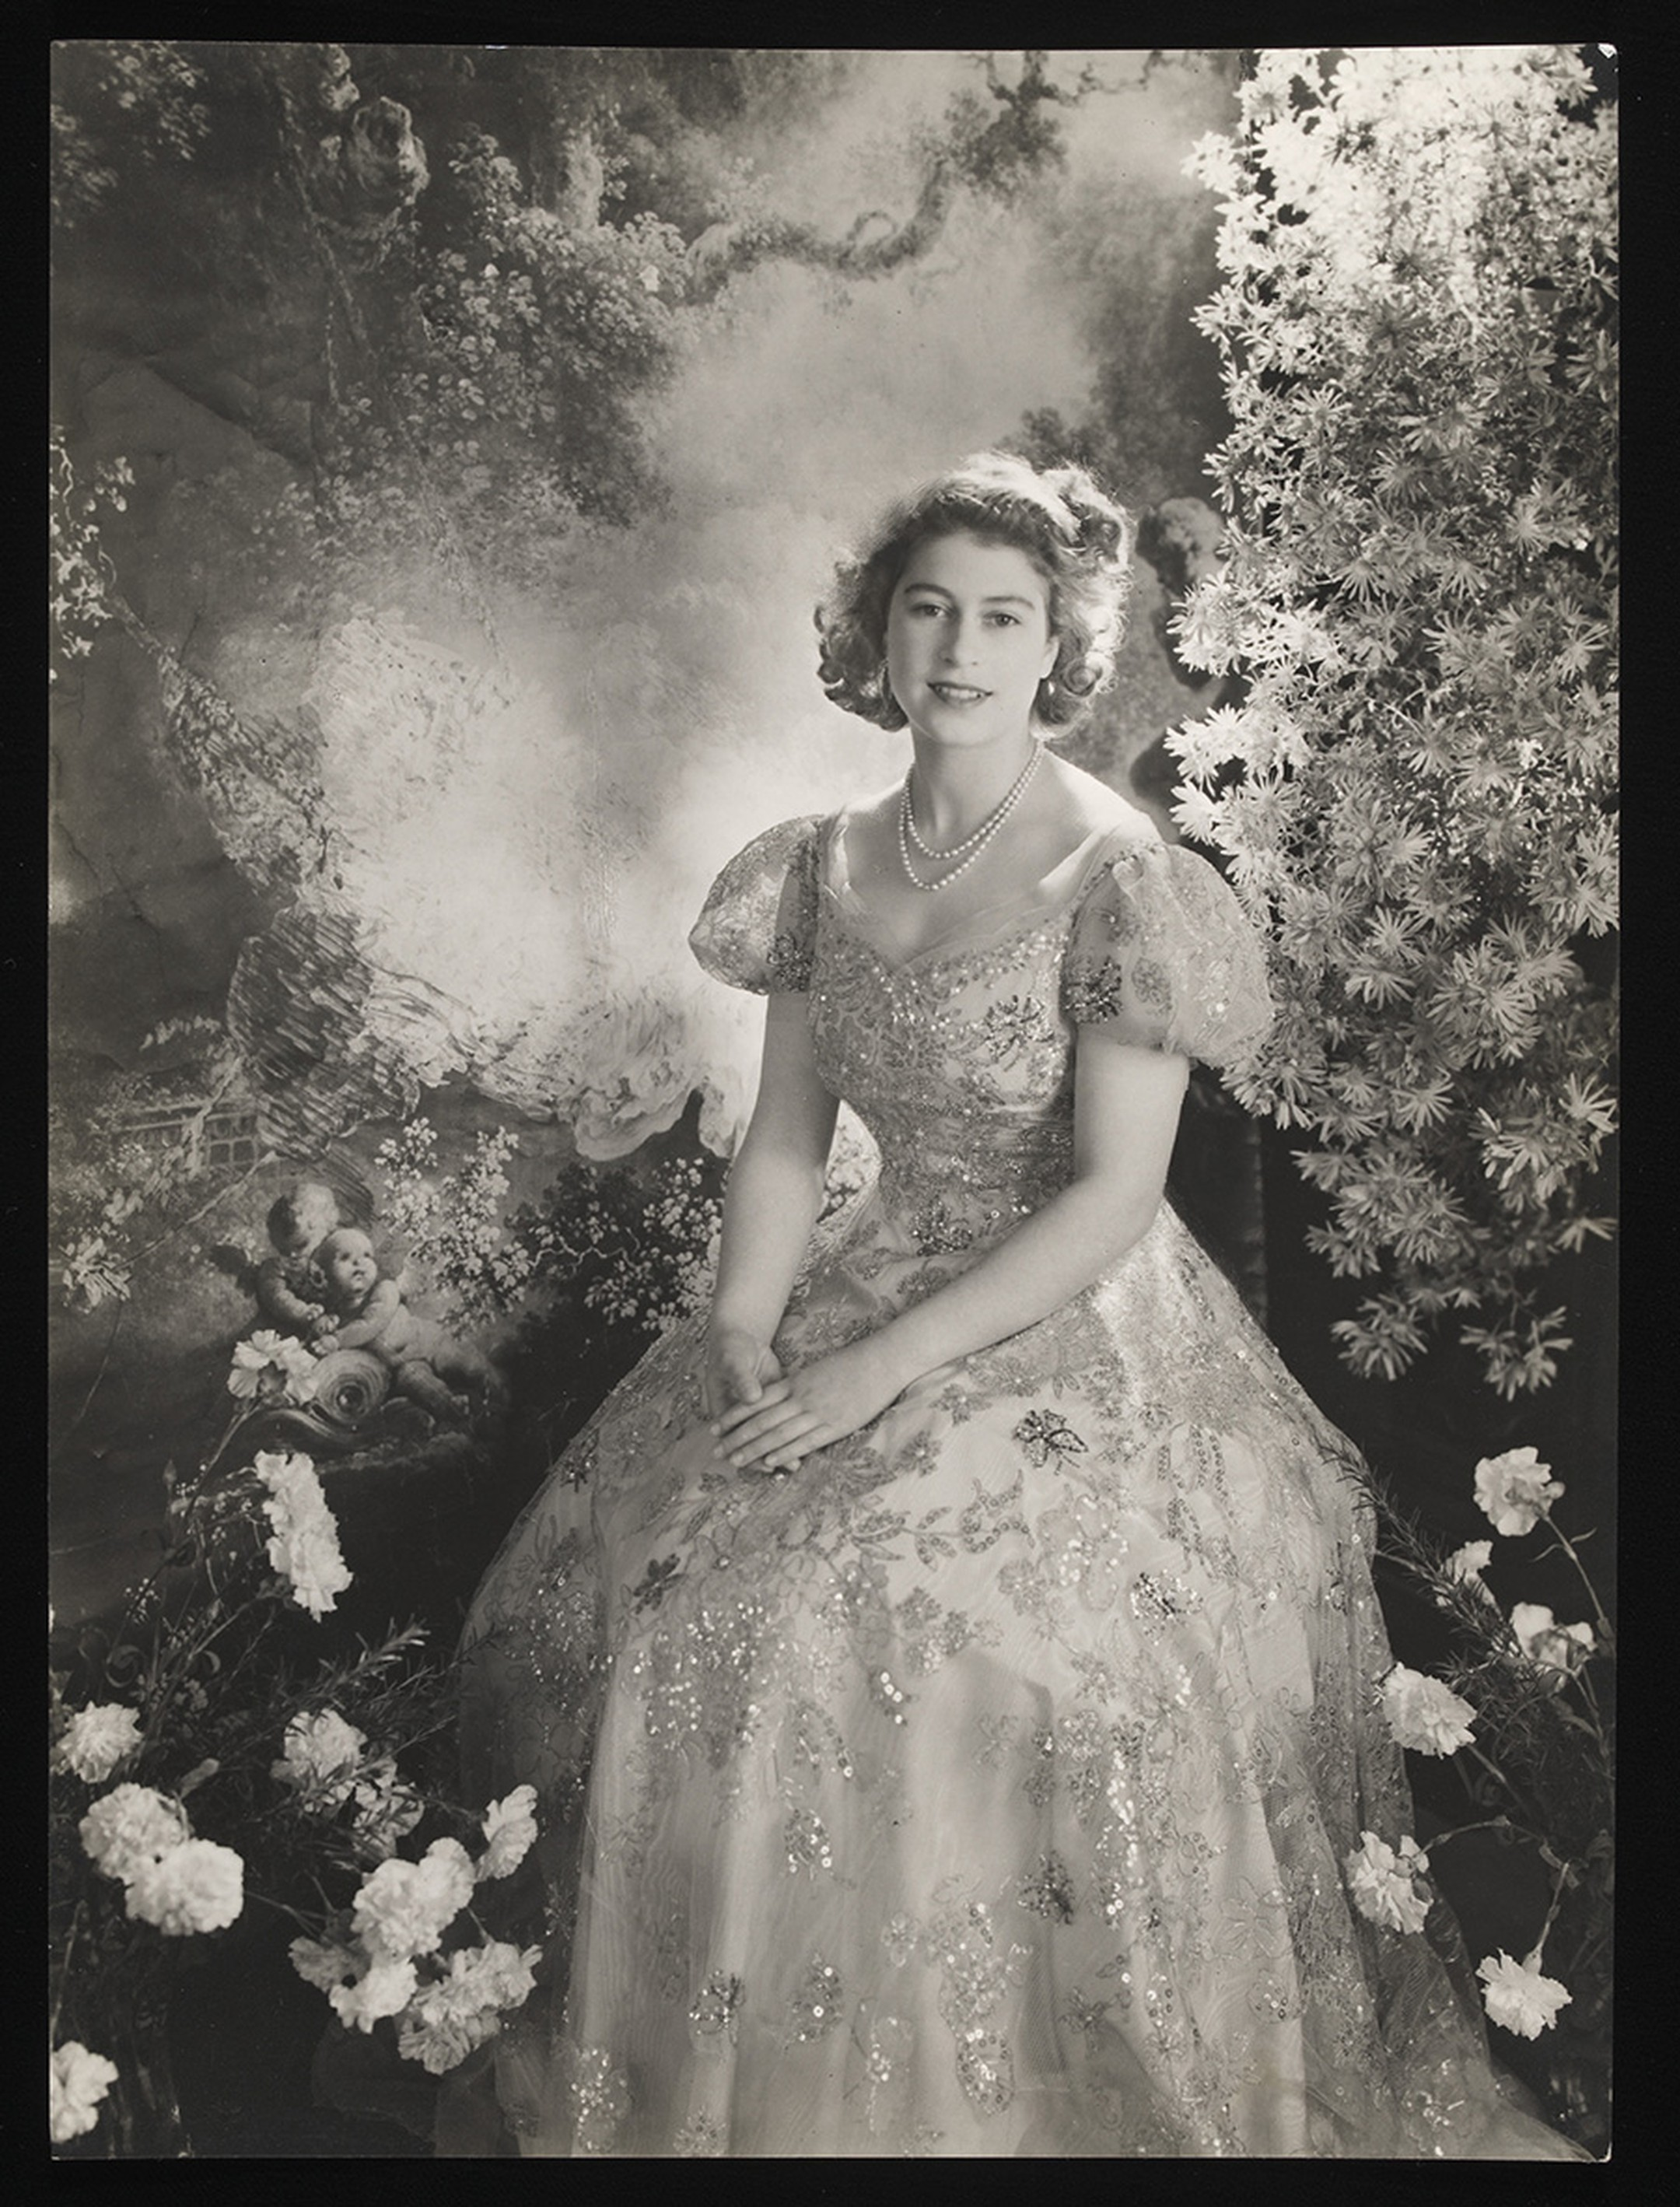 Title: Princess Elizabeth at Buckingham Palace  Artist: Cecil Beaton  Date: March 1945  Credit line: copyright V&A images